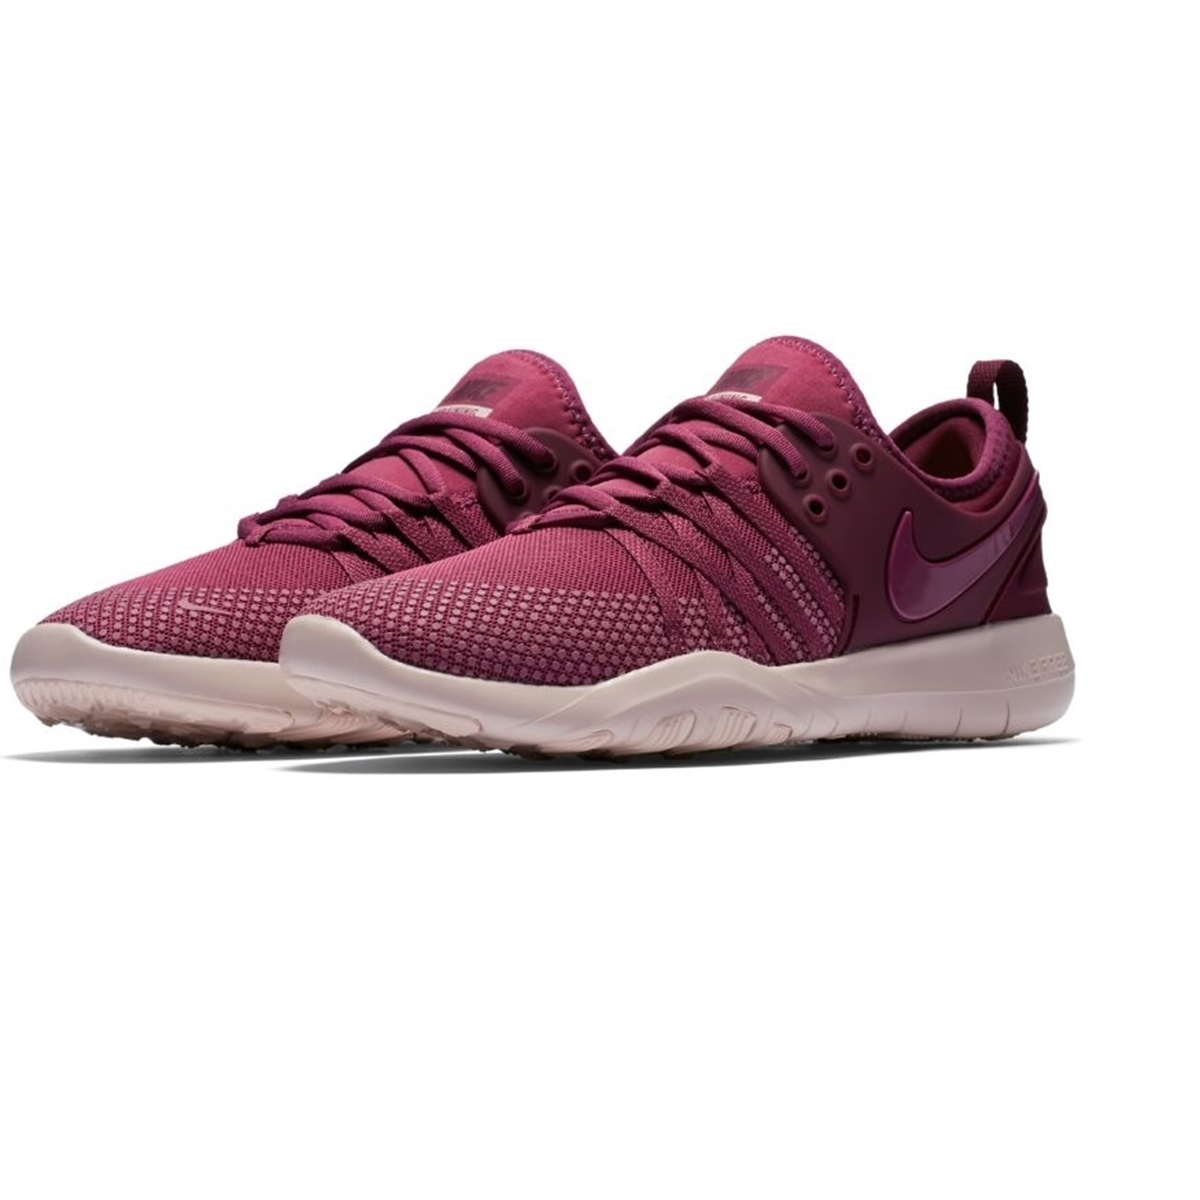 official photos 18b4f a0f86 Bilde av Nike WMNS NIKE FREE TRAINER 7 TEA BERRY. Salg 50%